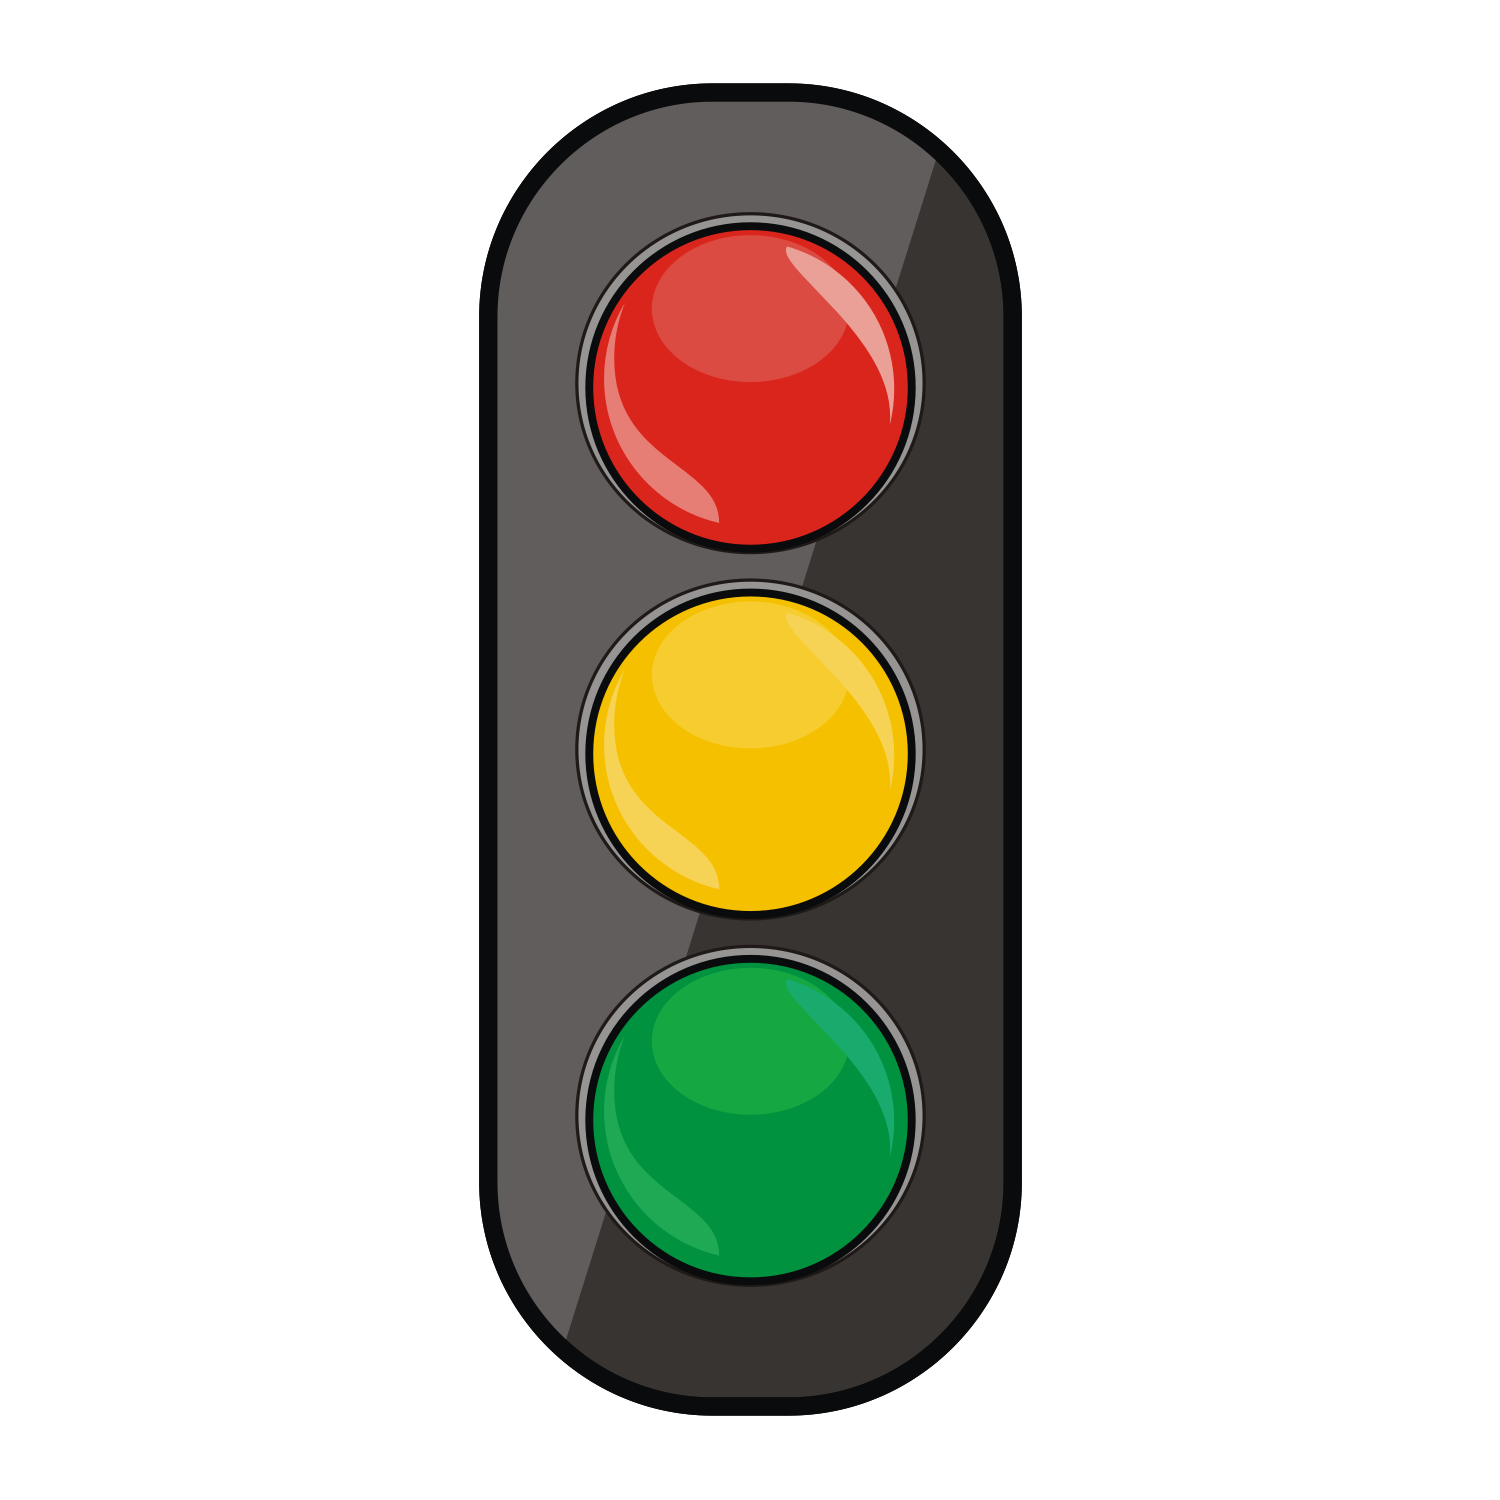 Free Traffic Light, Download Free Clip Art, Free Clip Art on.